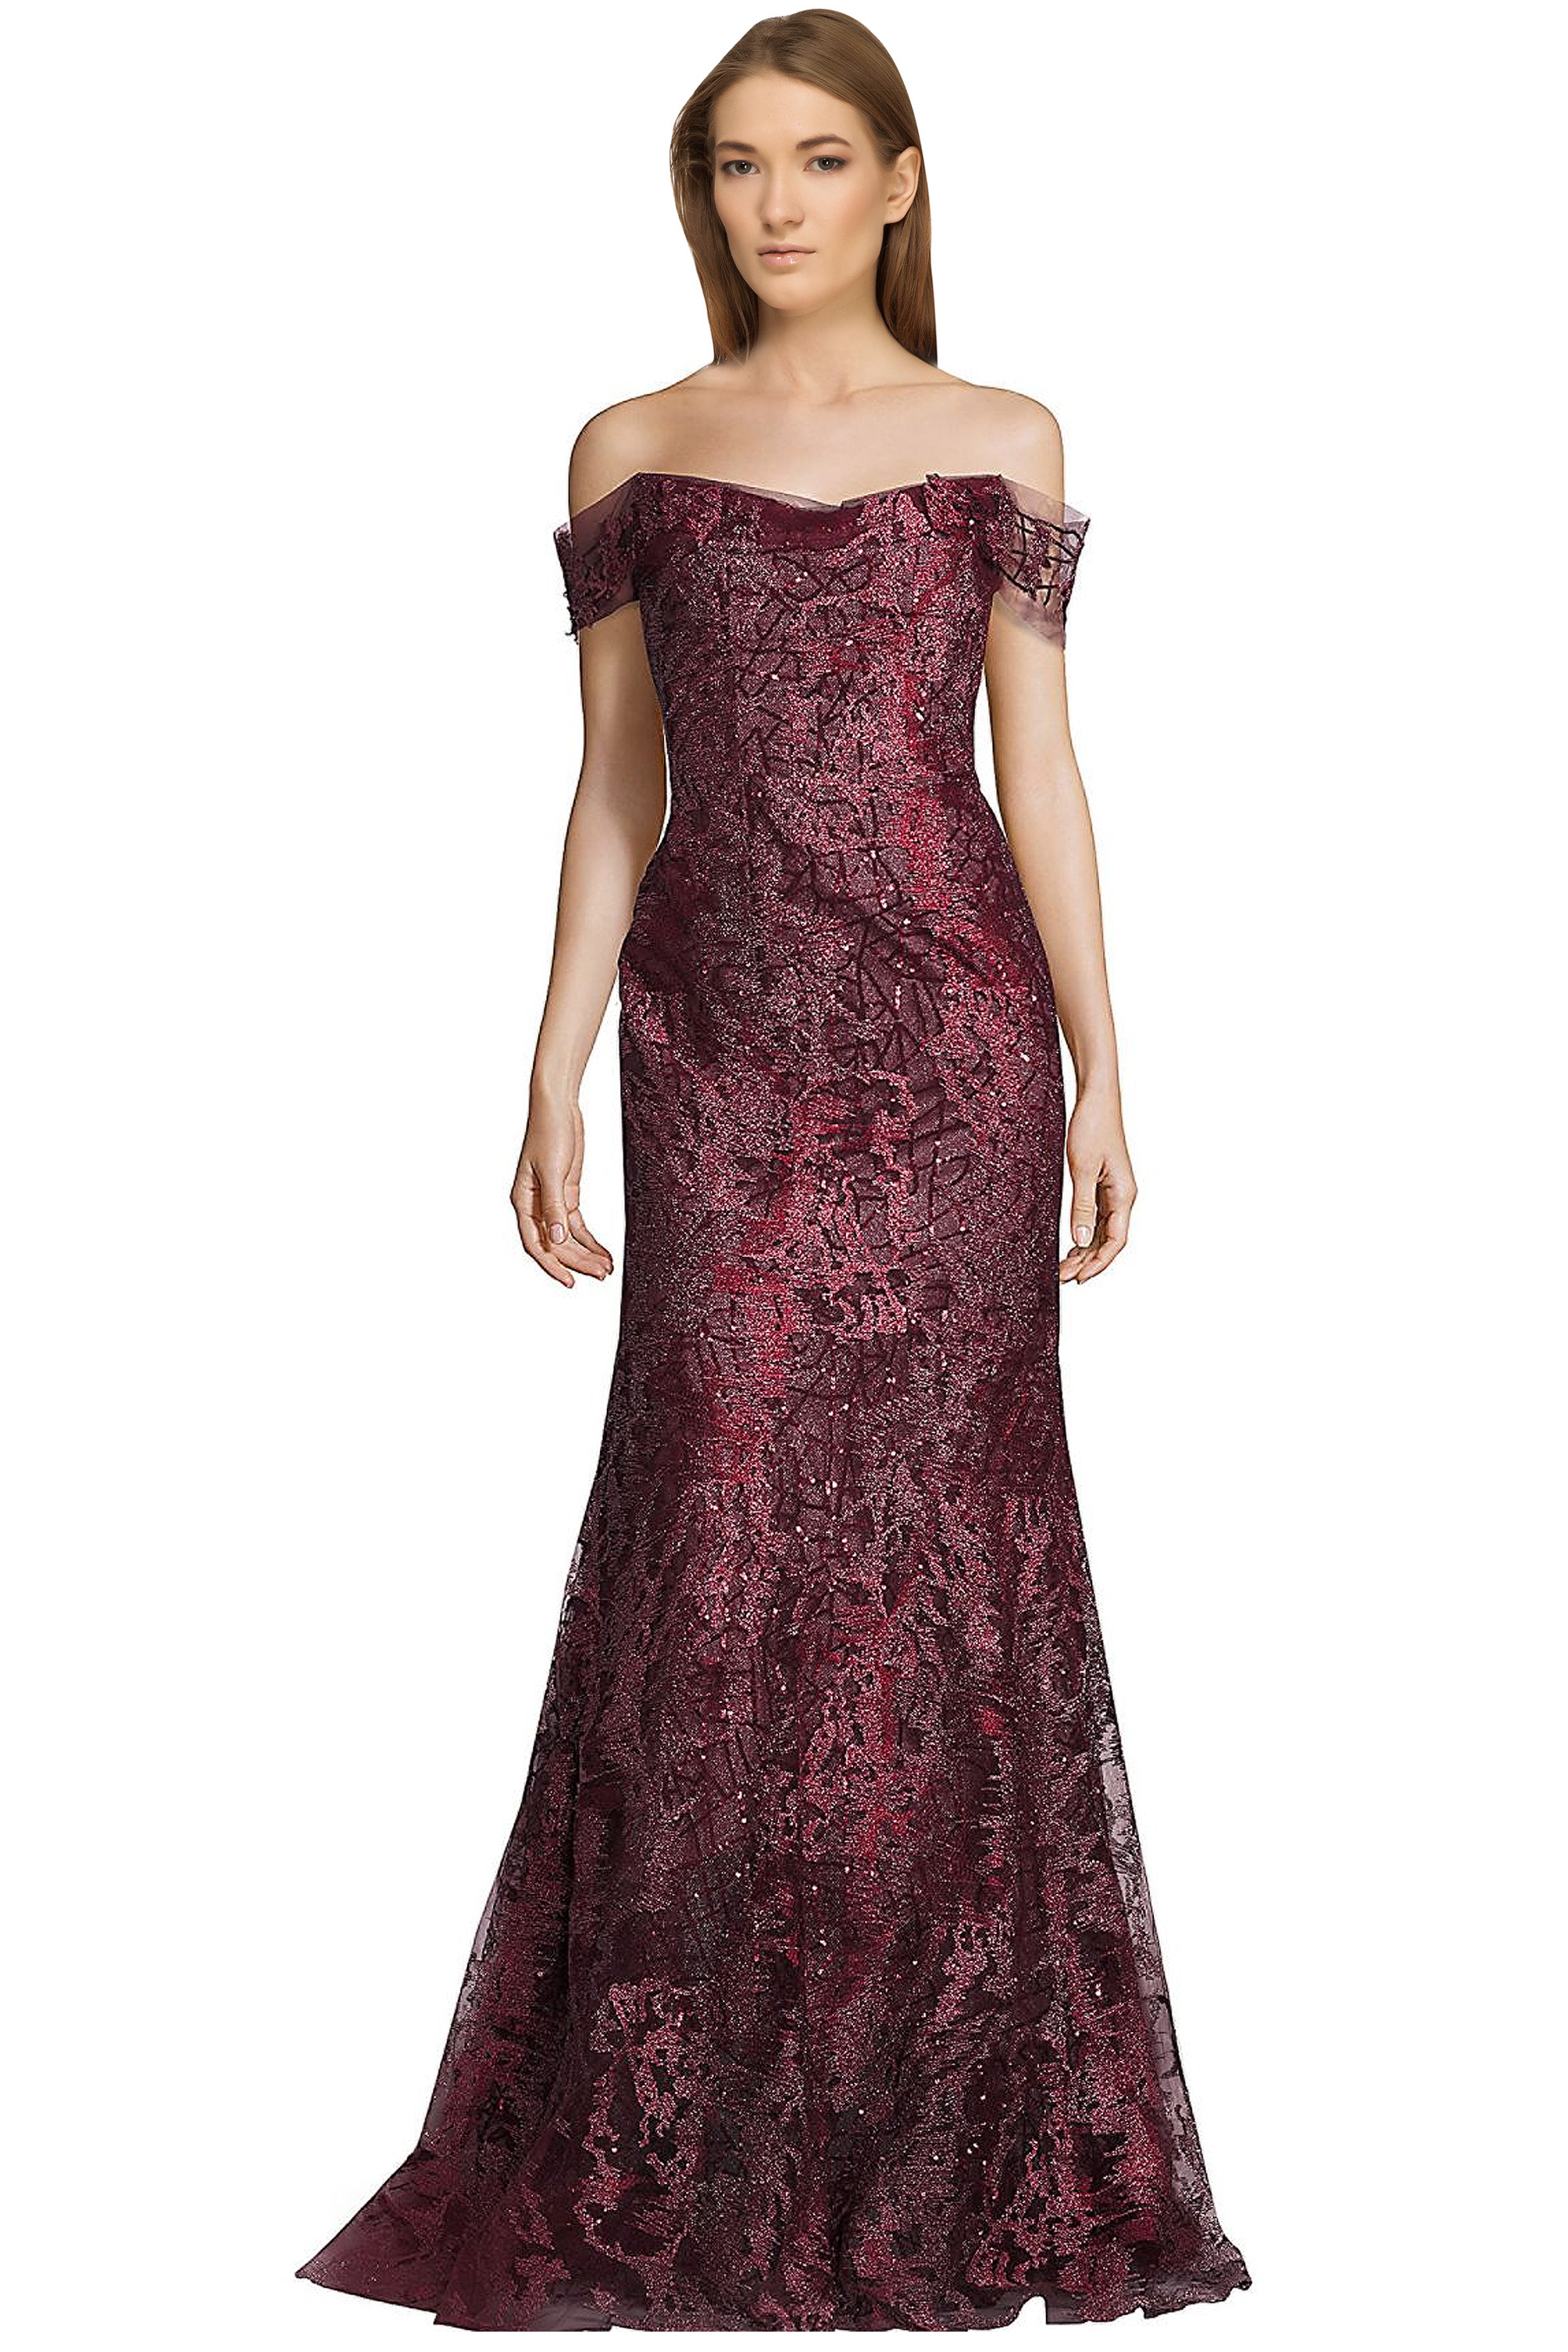 Rene Ruiz Claret Red Embellished Off Shoulder Evening Ball Gown ...